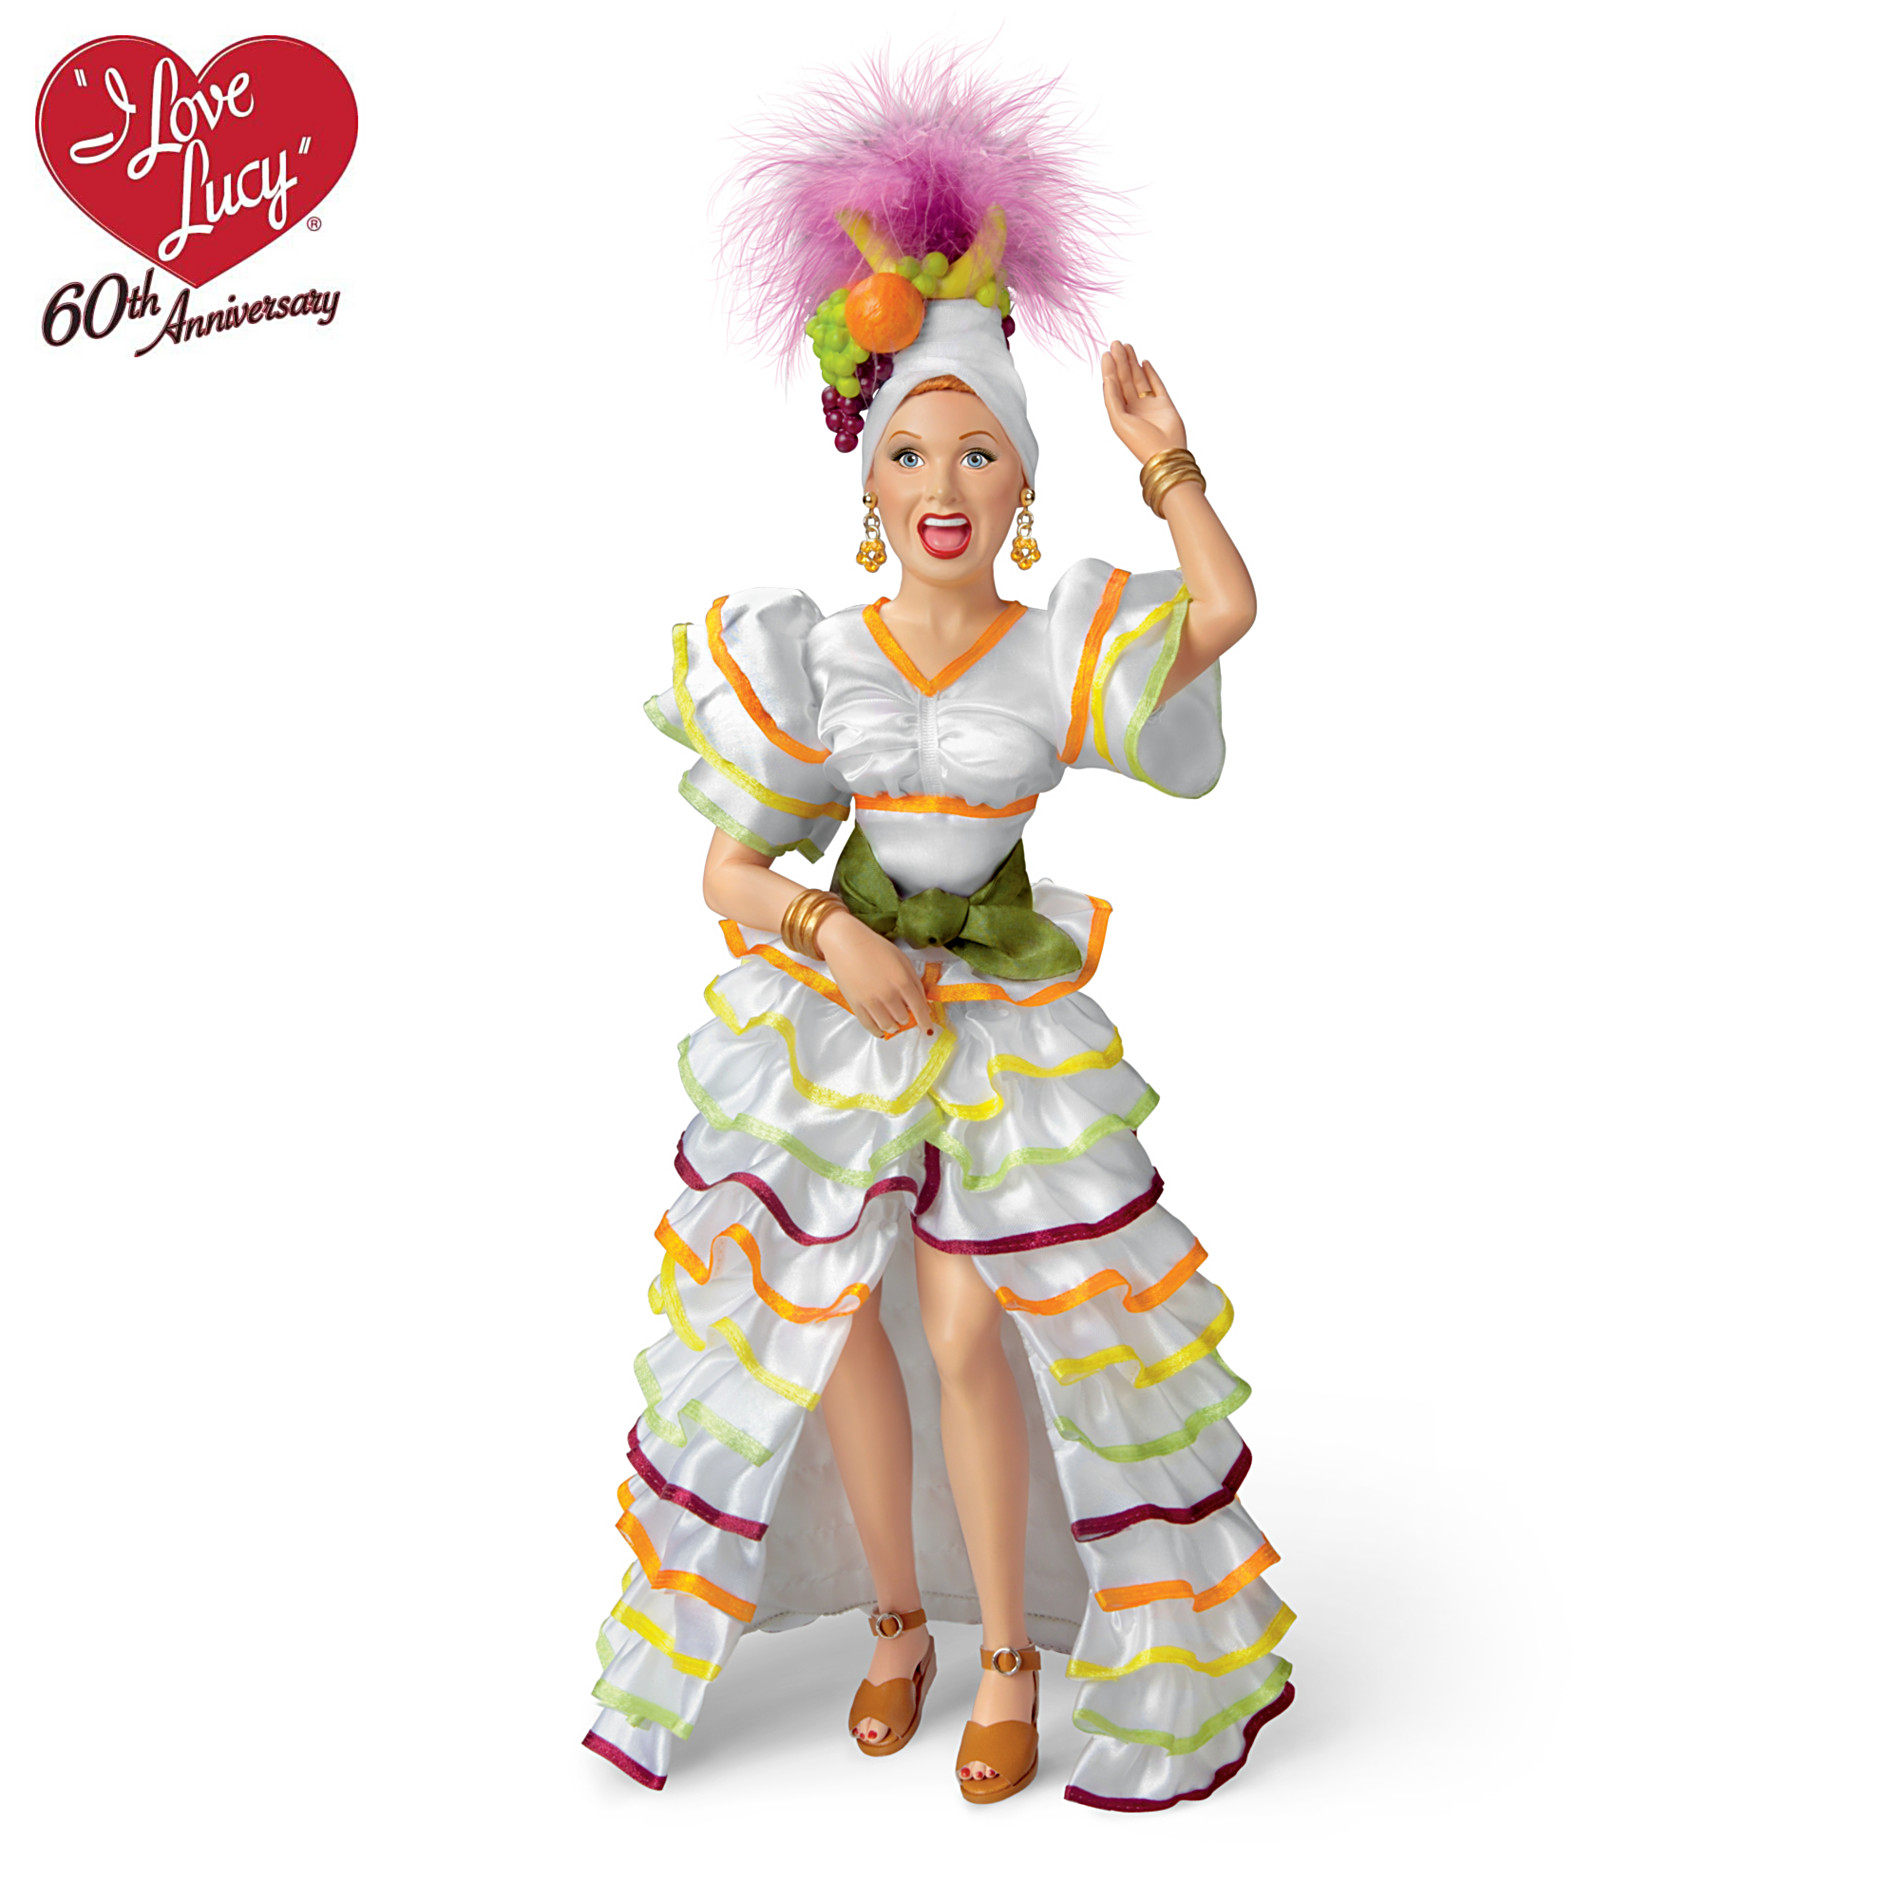 The Ashton-Drake Galleries I LOVE LUCY Be A Pal Fashion Doll at Sears.com